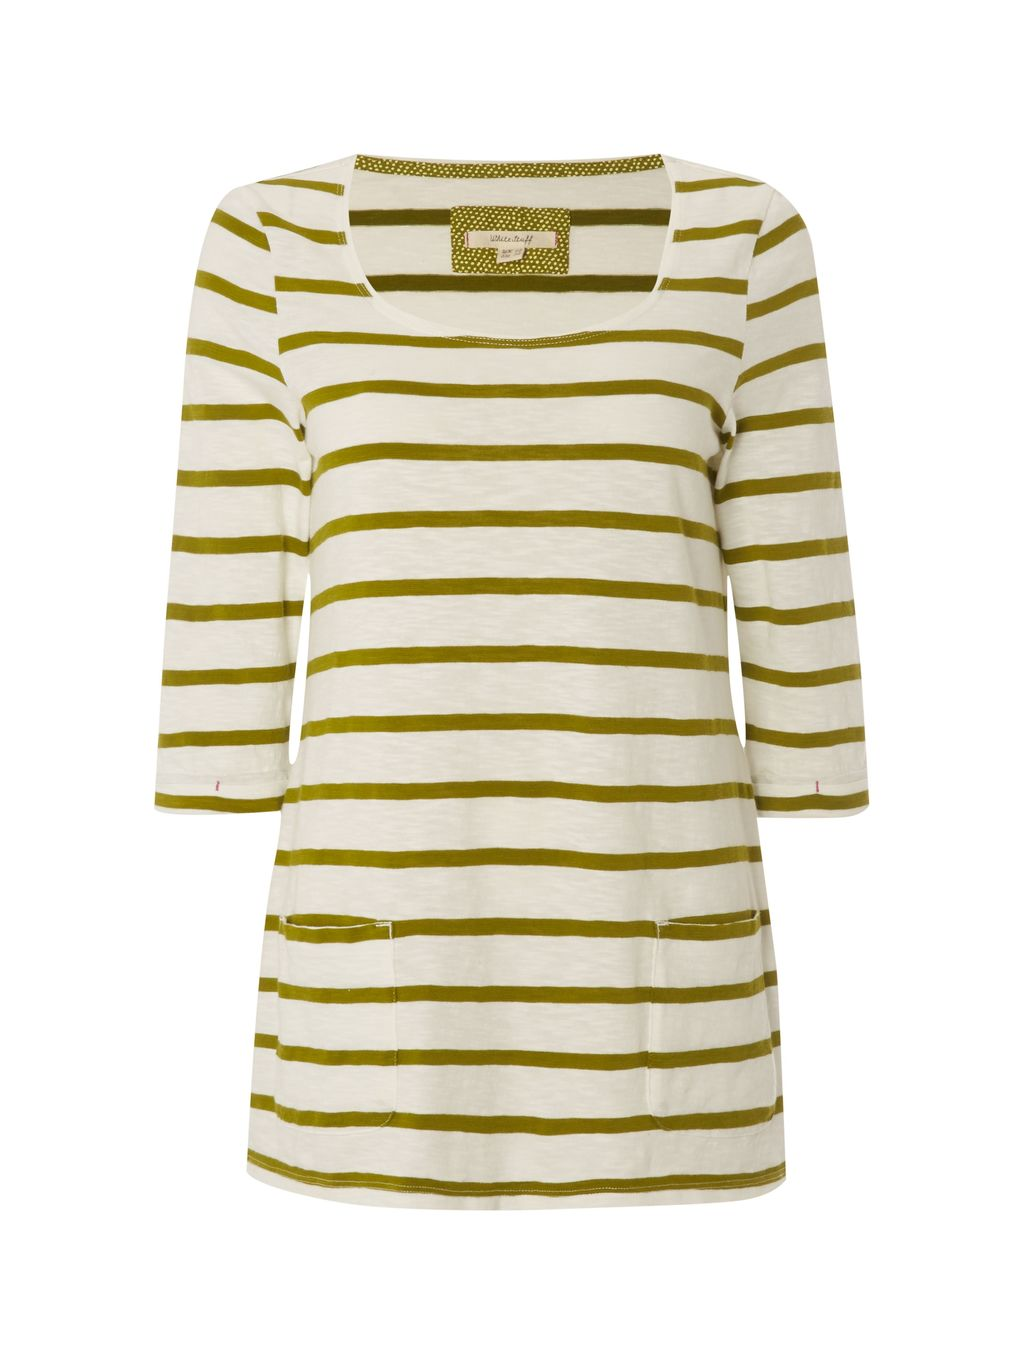 Coast Line Jersey Tee, Green - neckline: round neck; pattern: horizontal stripes; length: below the bottom; style: t-shirt; secondary colour: white; predominant colour: khaki; occasions: casual, creative work; fibres: cotton - 100%; fit: body skimming; sleeve length: 3/4 length; sleeve style: standard; pattern type: fabric; pattern size: light/subtle; texture group: jersey - stretchy/drapey; season: s/s 2016